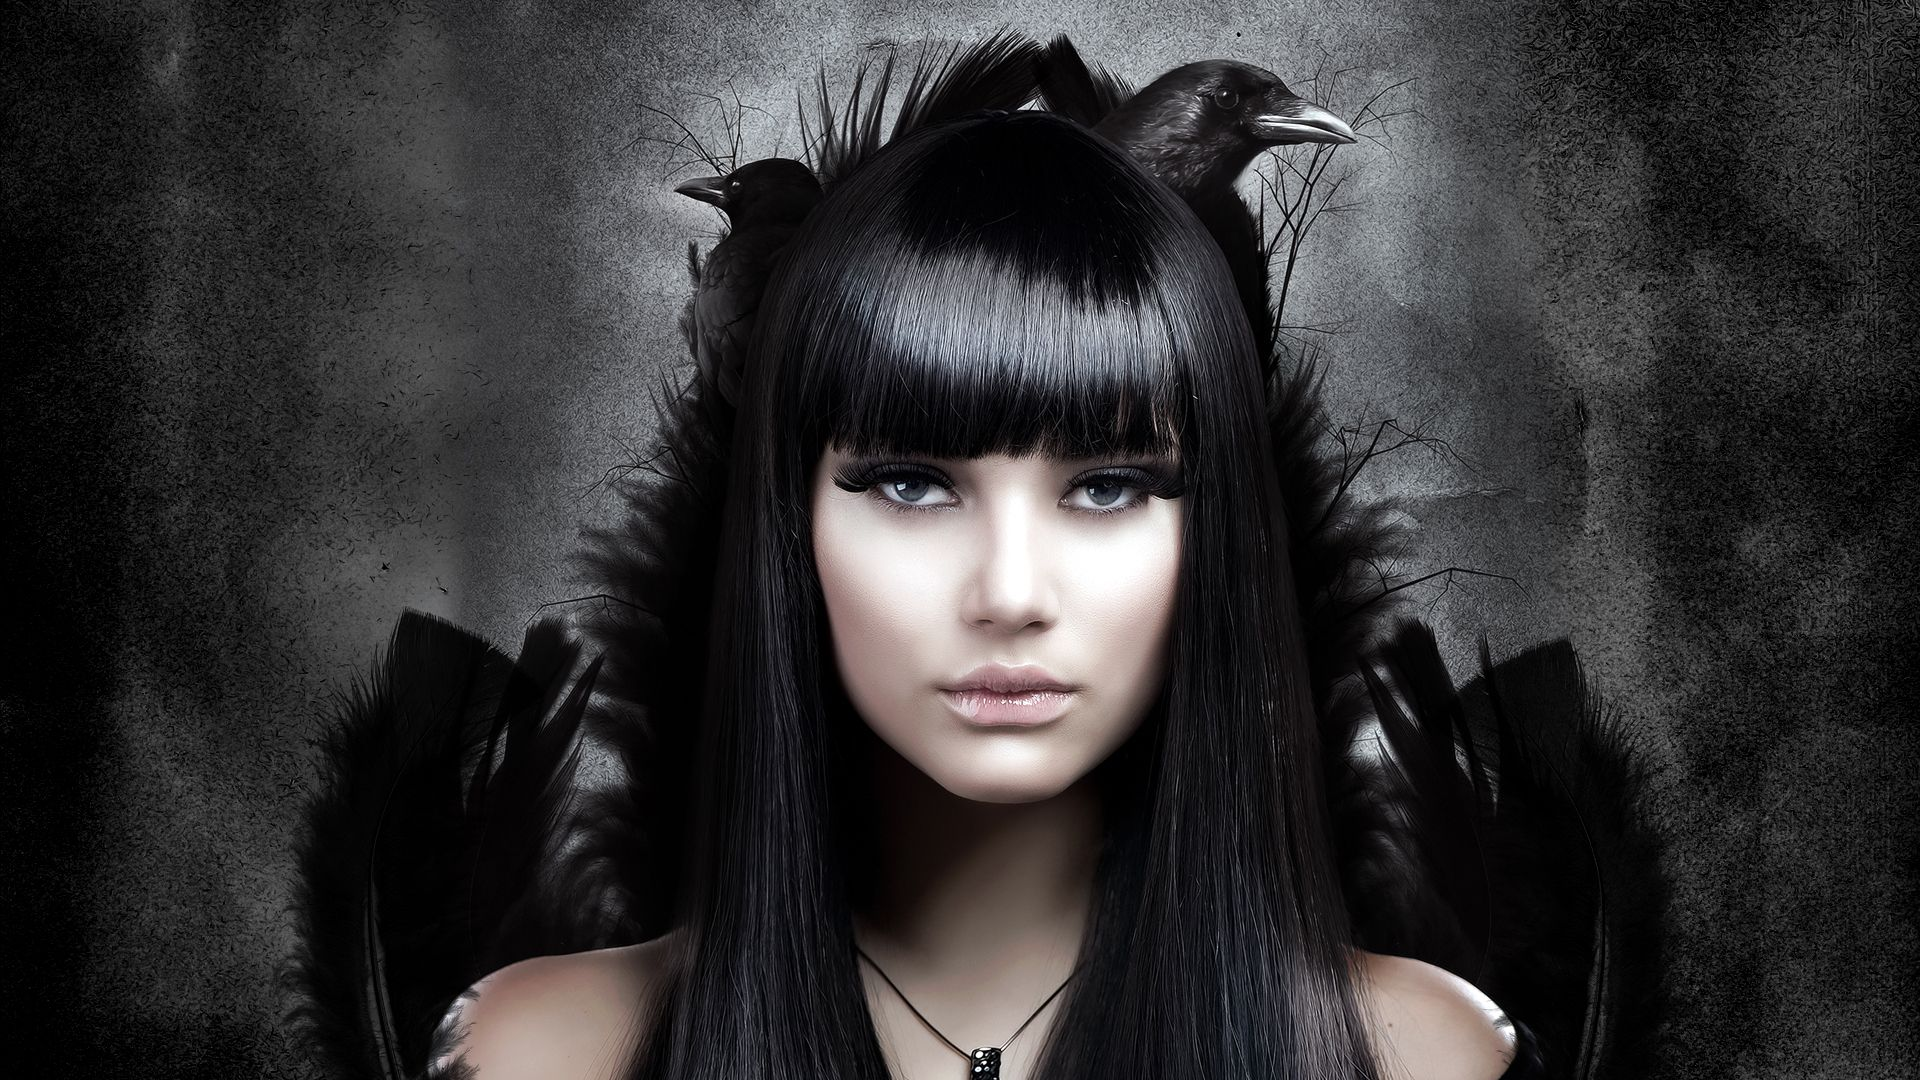 Gothic wallpaper and themes